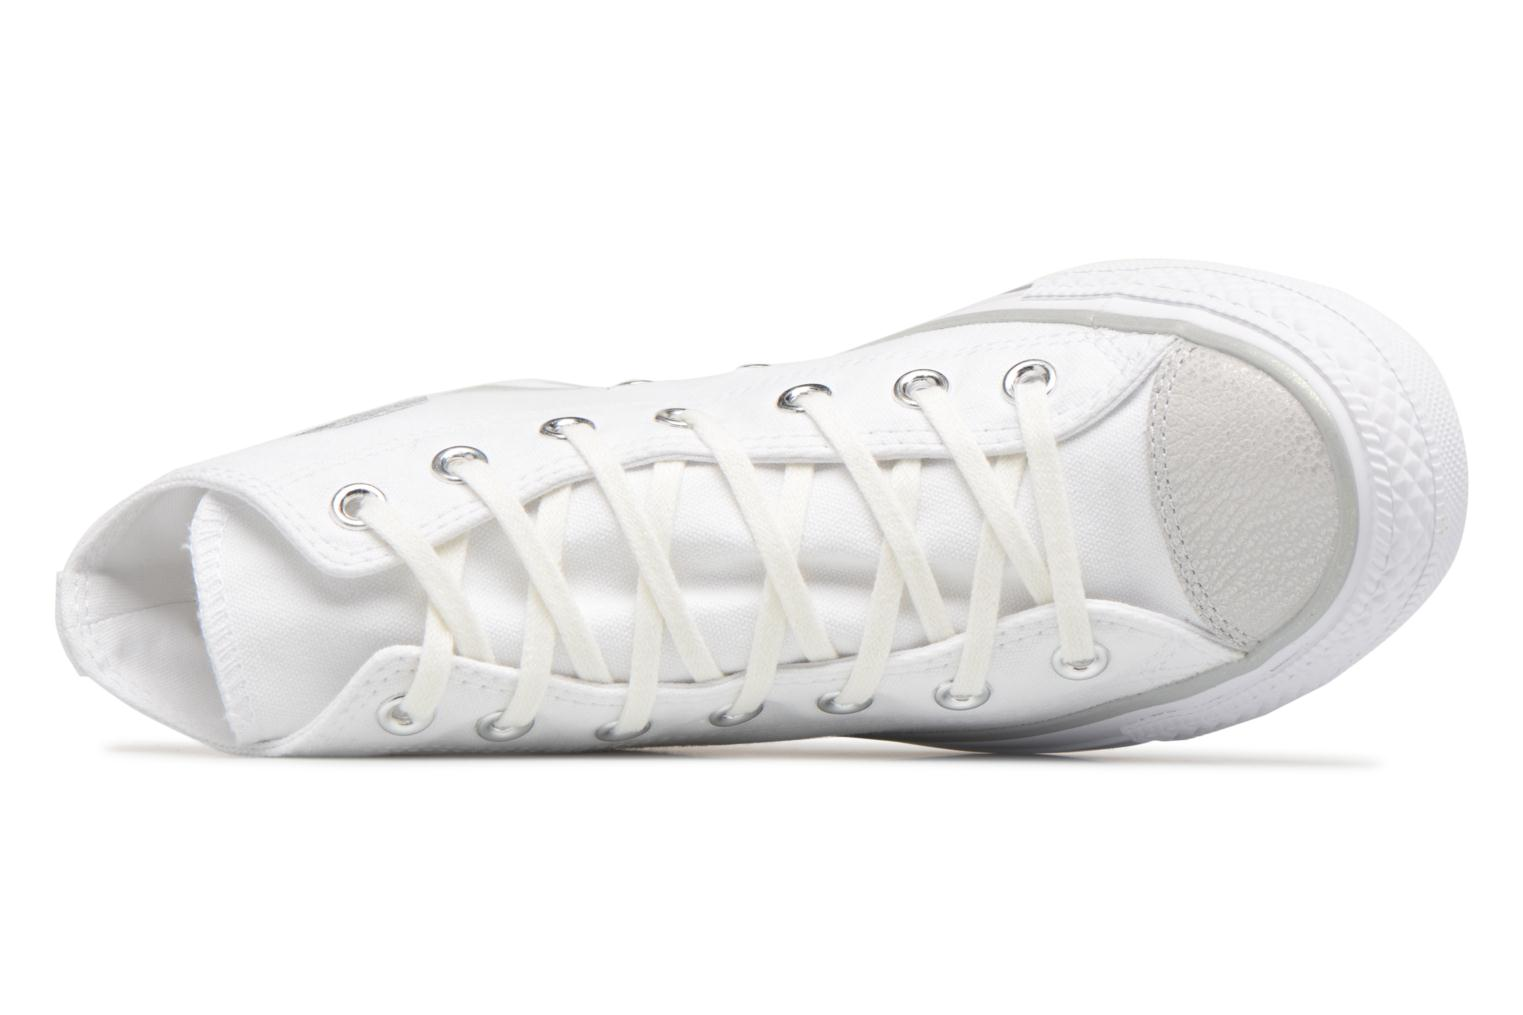 Chuck Taylor All Star Tipped Metallic Toecap Hi White/Silver/White